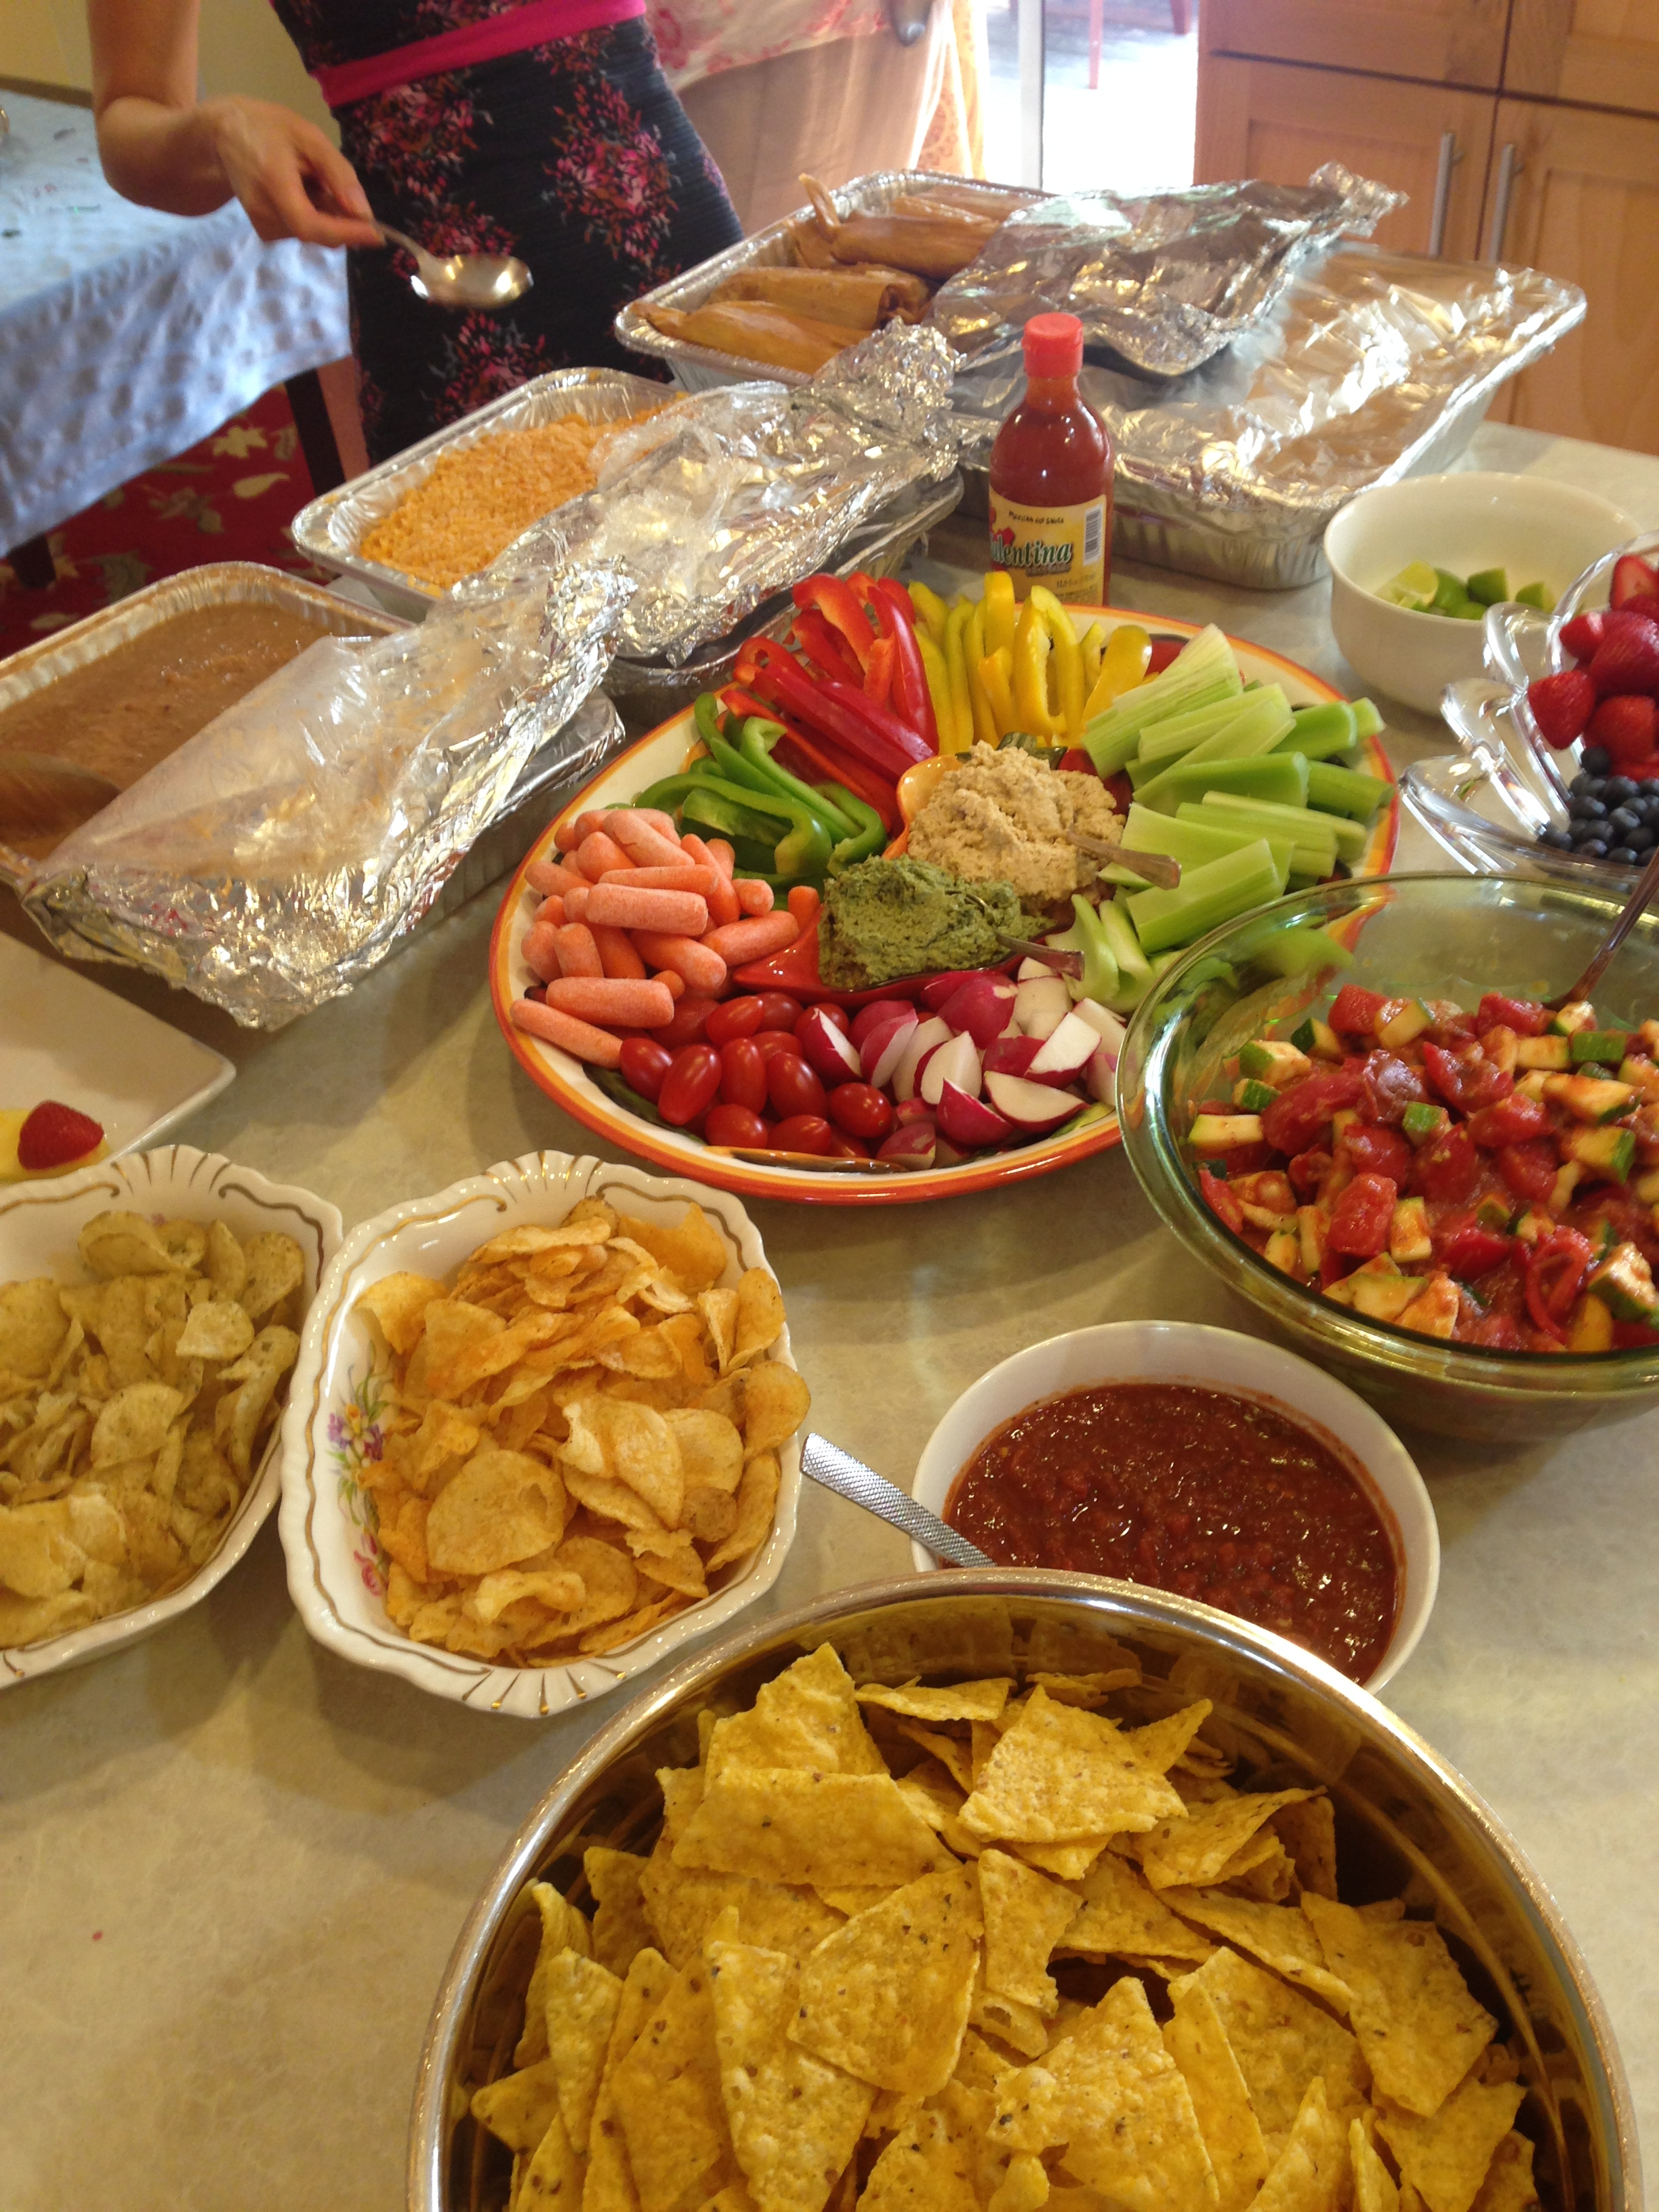 An example of the main elements of a party buffet: a main dish, a veggie platter, fruit platter and chips.